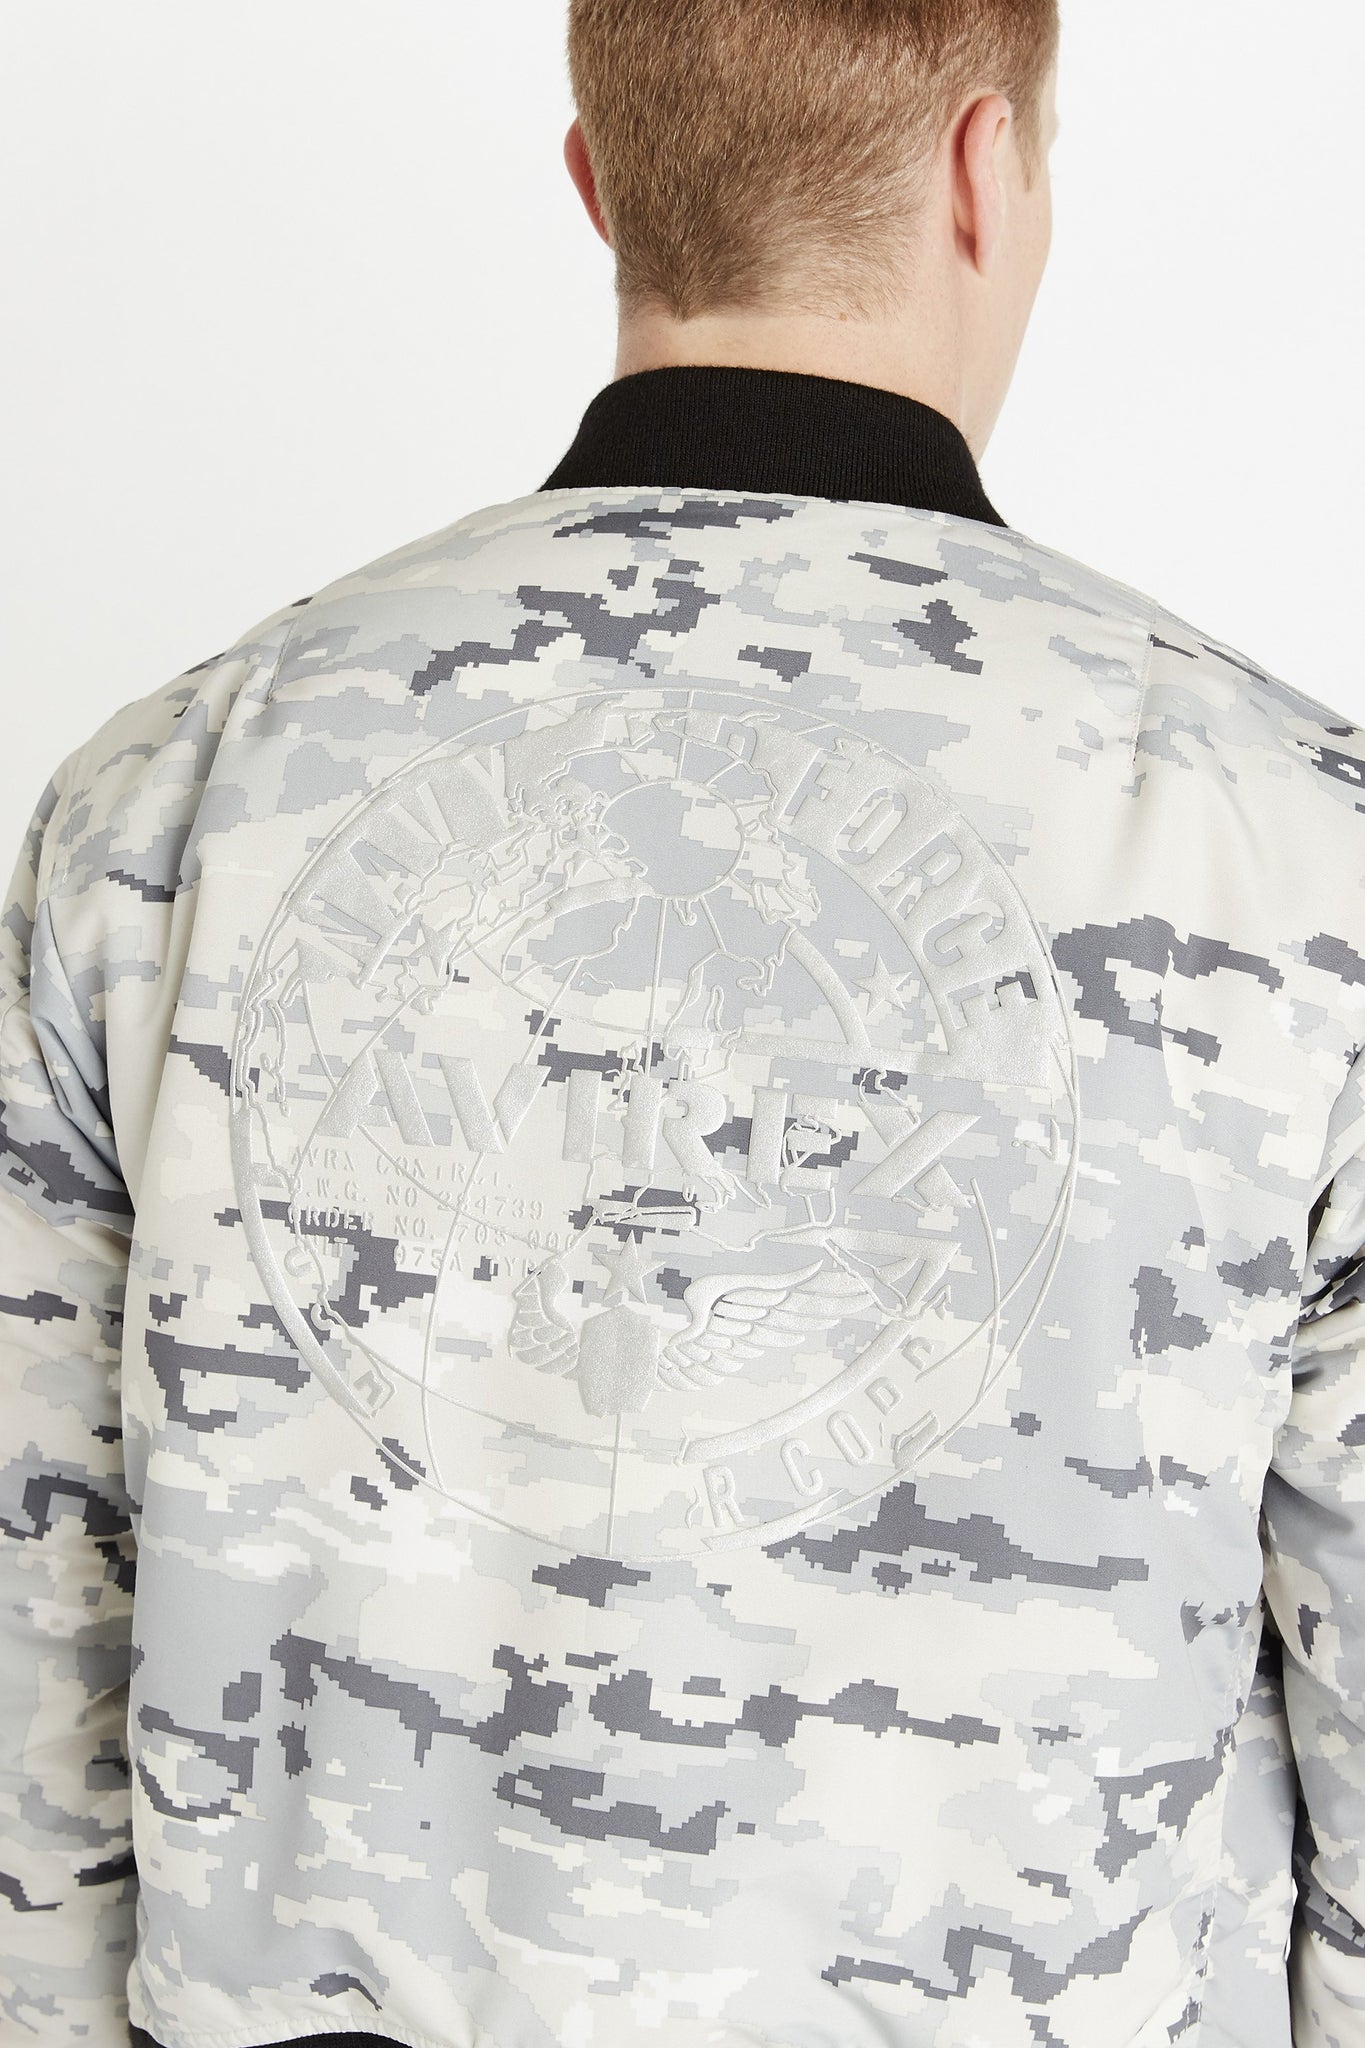 Detailed view of Avirex round print on the back in white color